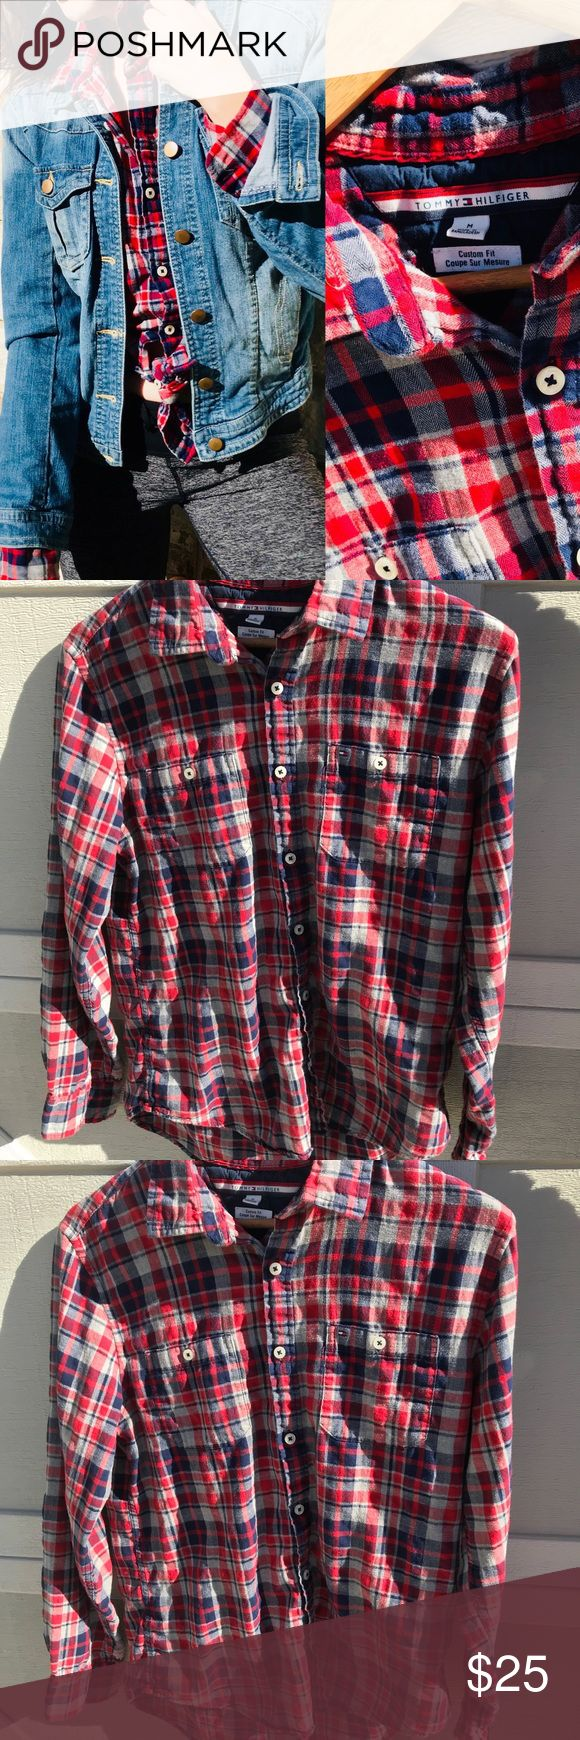 """90s  Tommy Hilfiger Plaid Flannel Button Up Men's but I wore it anyway as a lady, so it's boxy but soooo comfy! Red and blue plaid, Signature Tommy buttons and label everywhere. Super soft. 25"""" long. I love wearing it tied  up and styling it with a denim jacket and black ripped jeans. 100% cotton. Tommy Hilfiger Tops Button Down Shirts"""